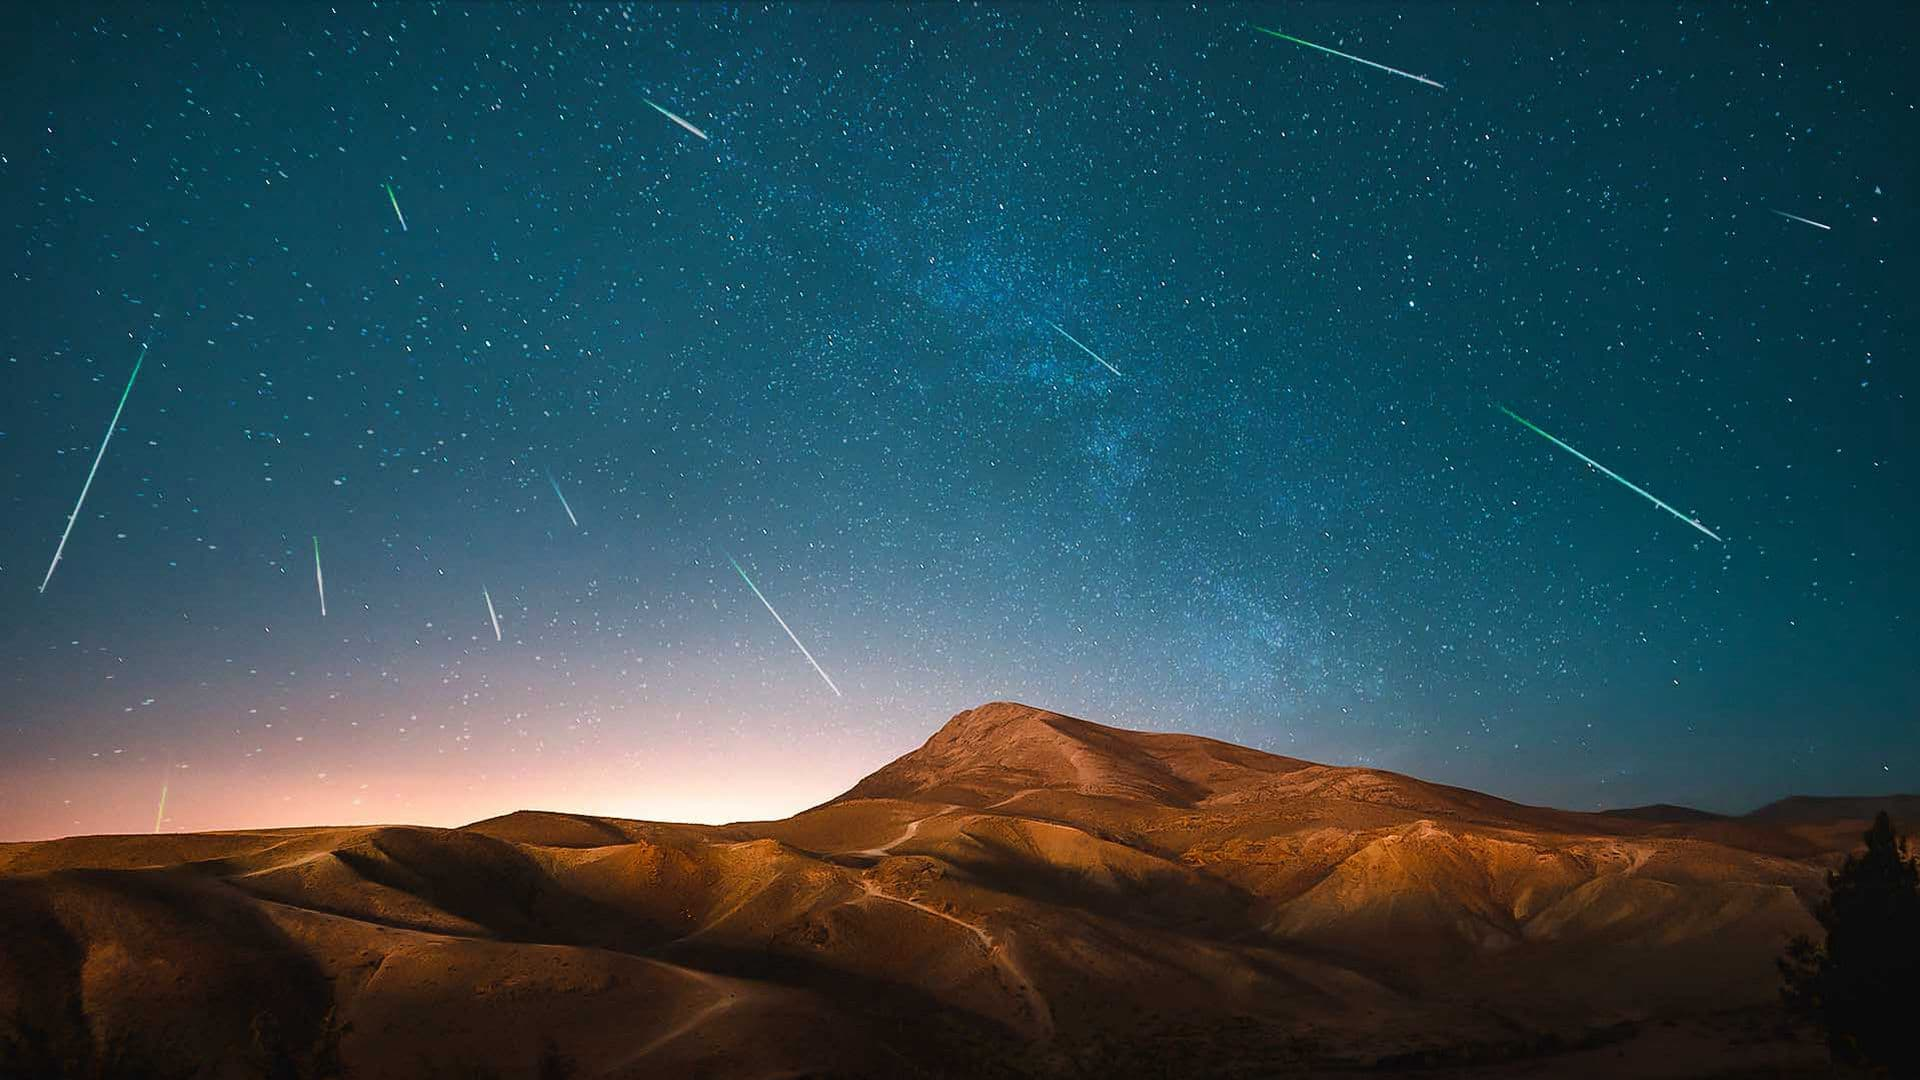 Four Meteor Showers Visible Together This Summer